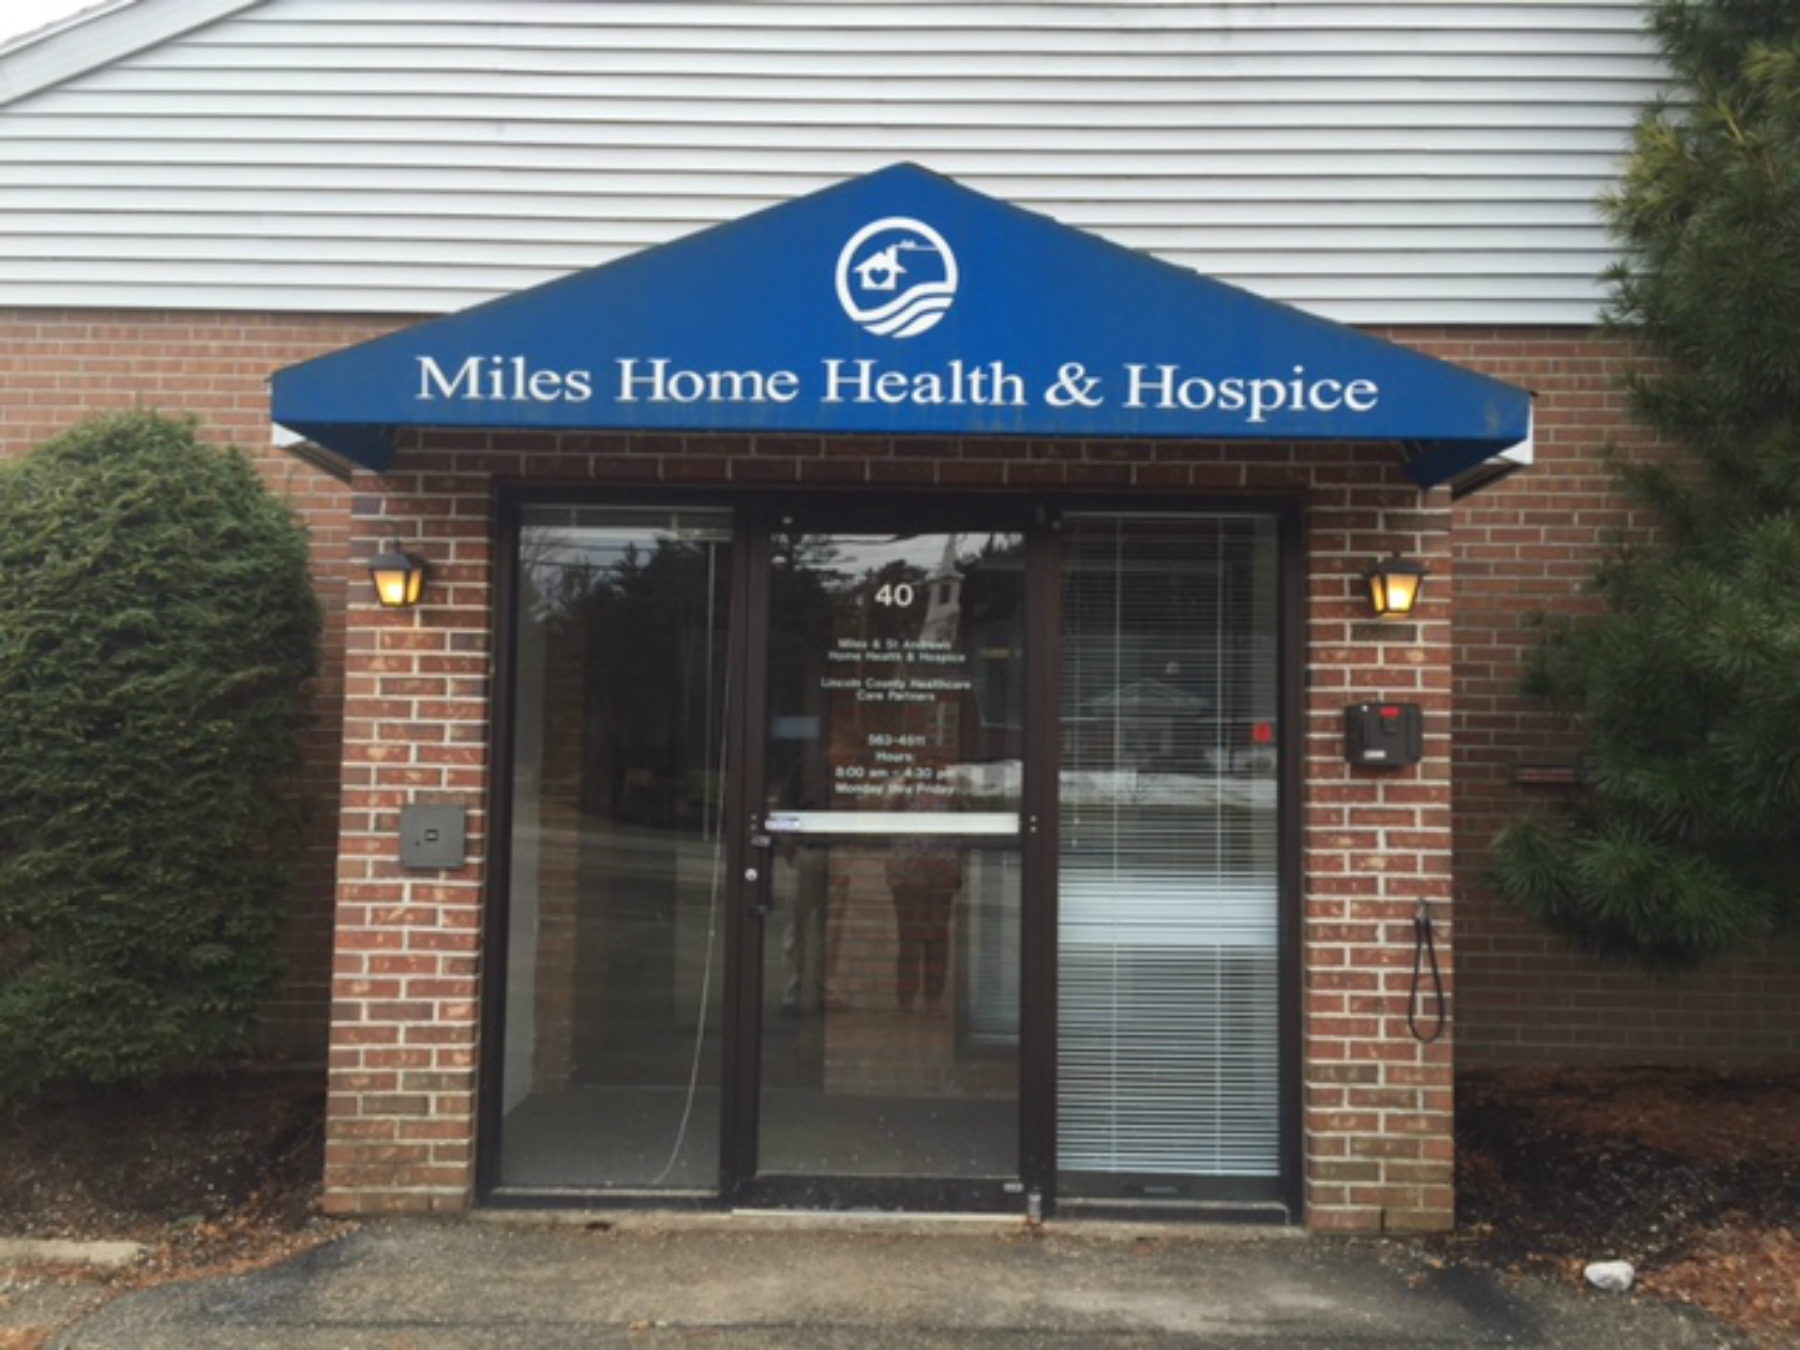 Miles Home Health & Hospice | Damariscotta